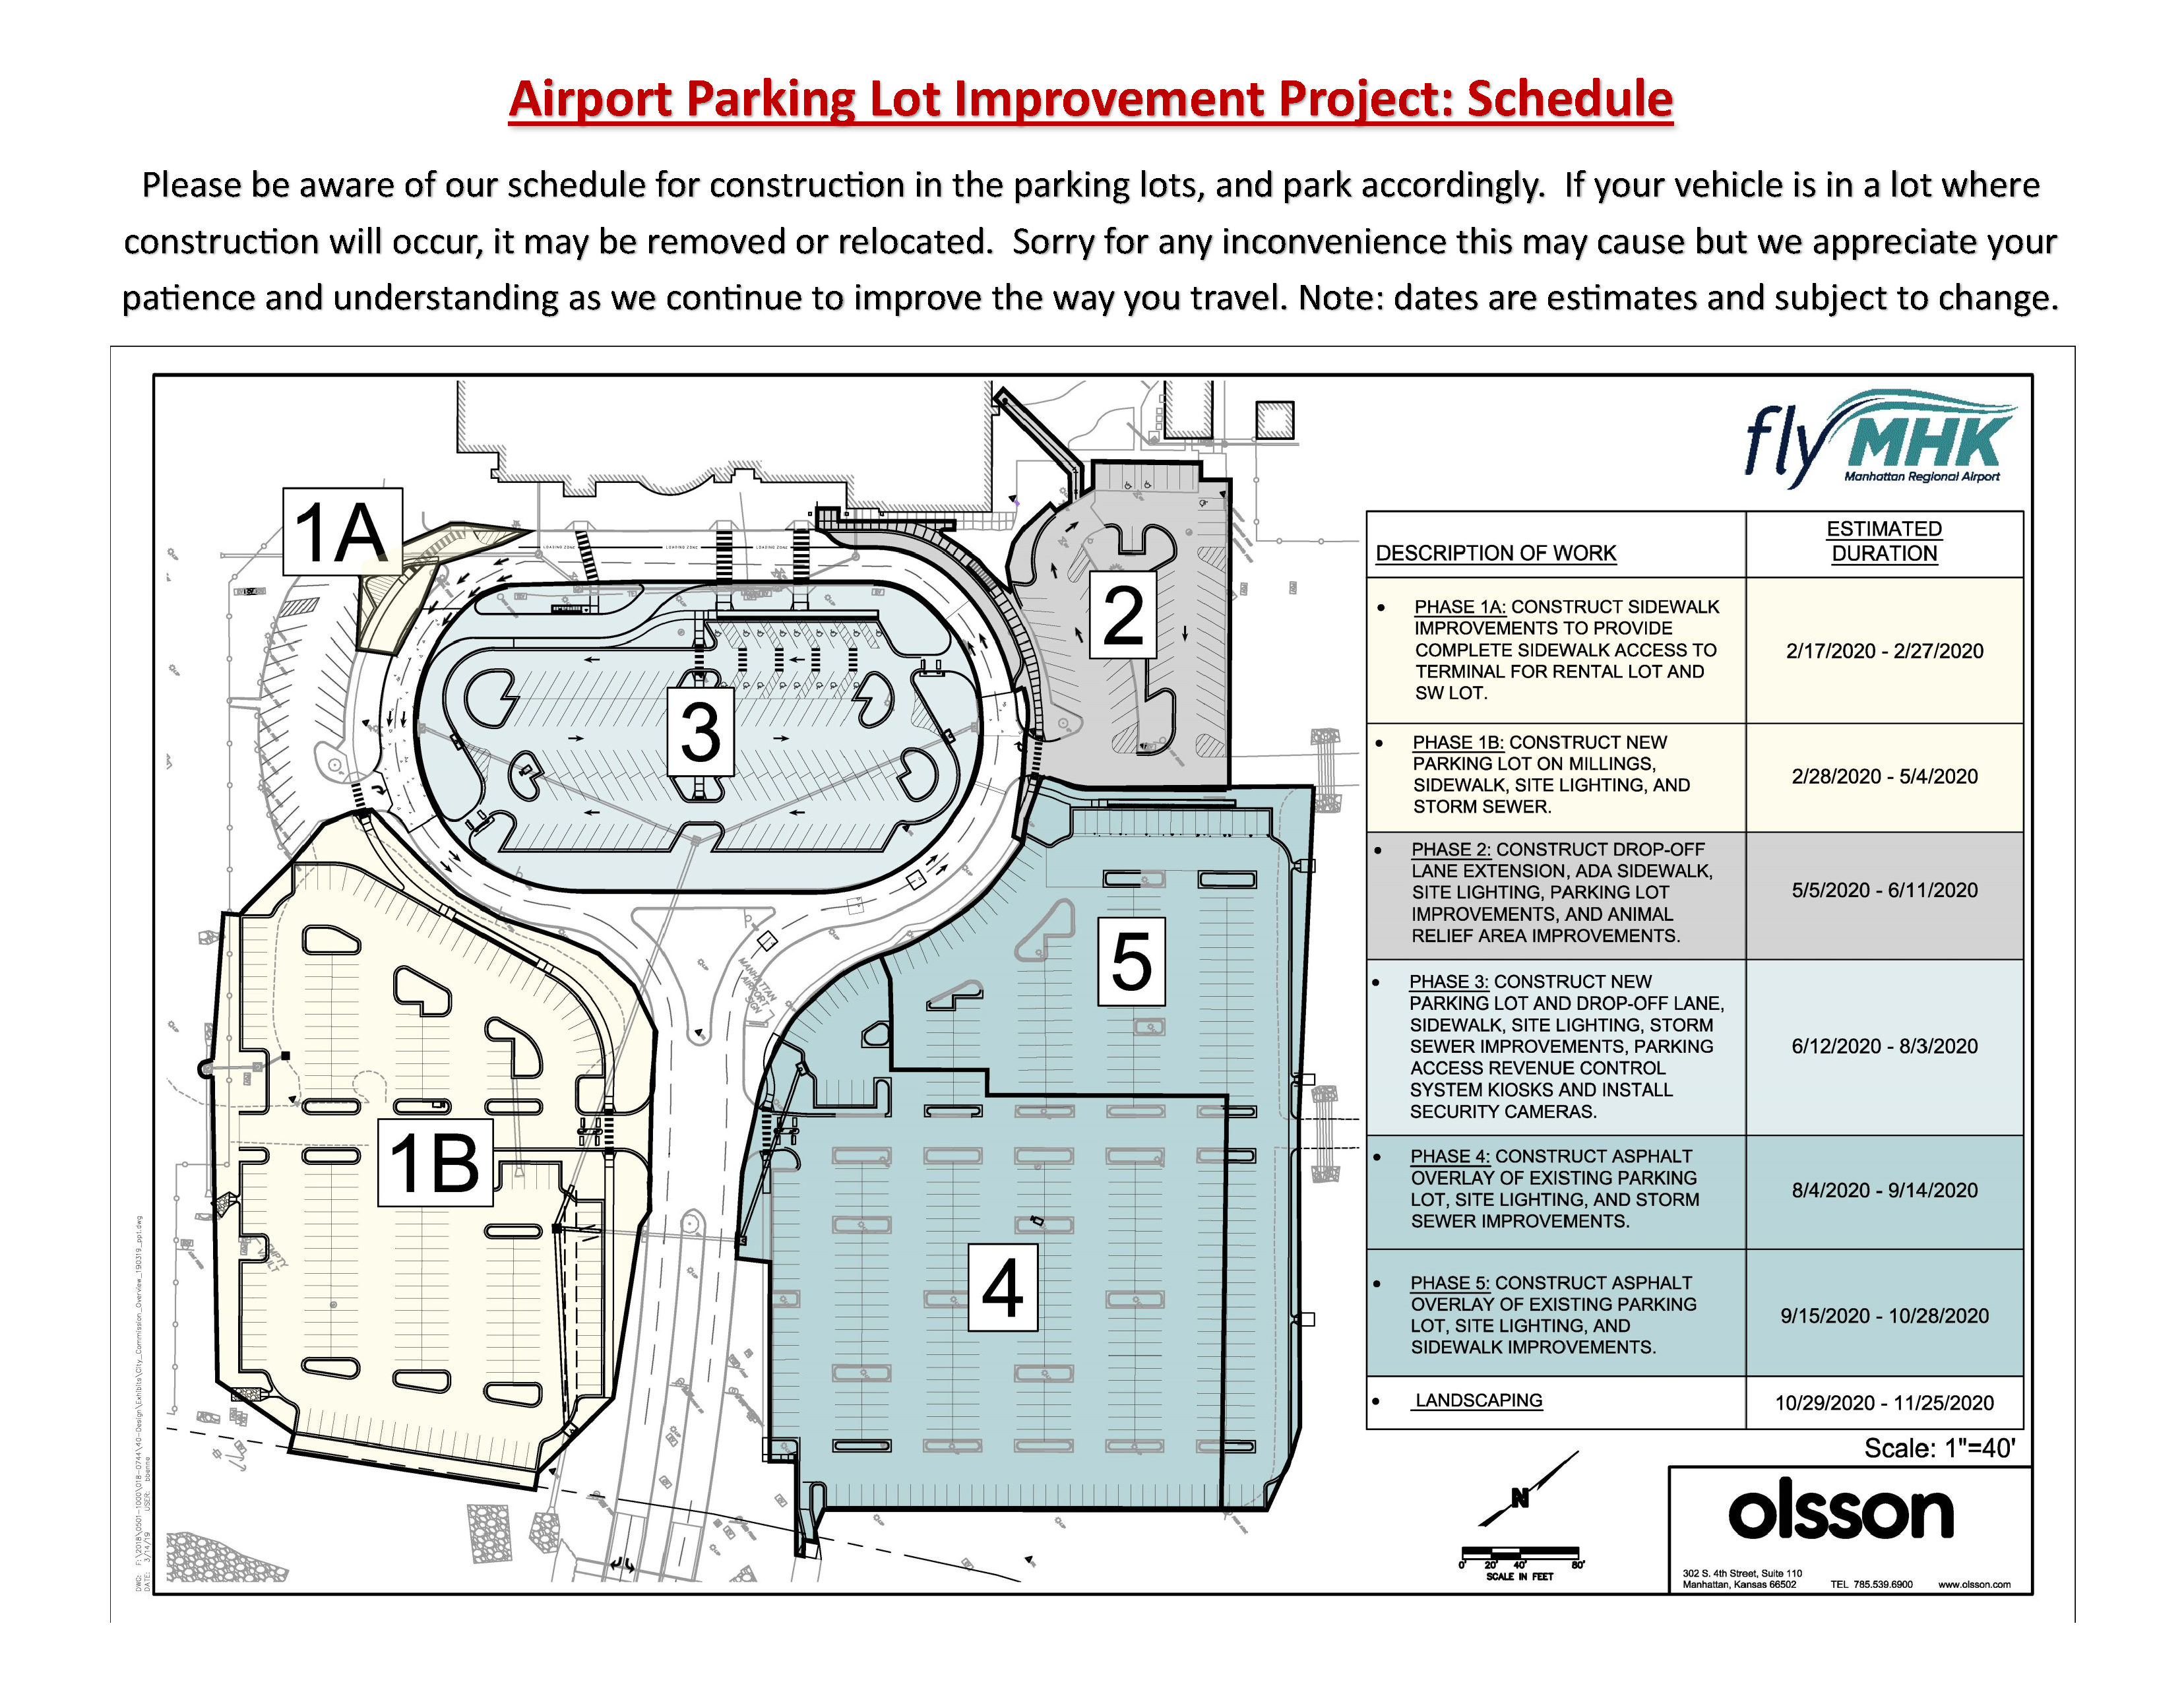 MHK Terminal Parking Lot Improvement Schedule for public